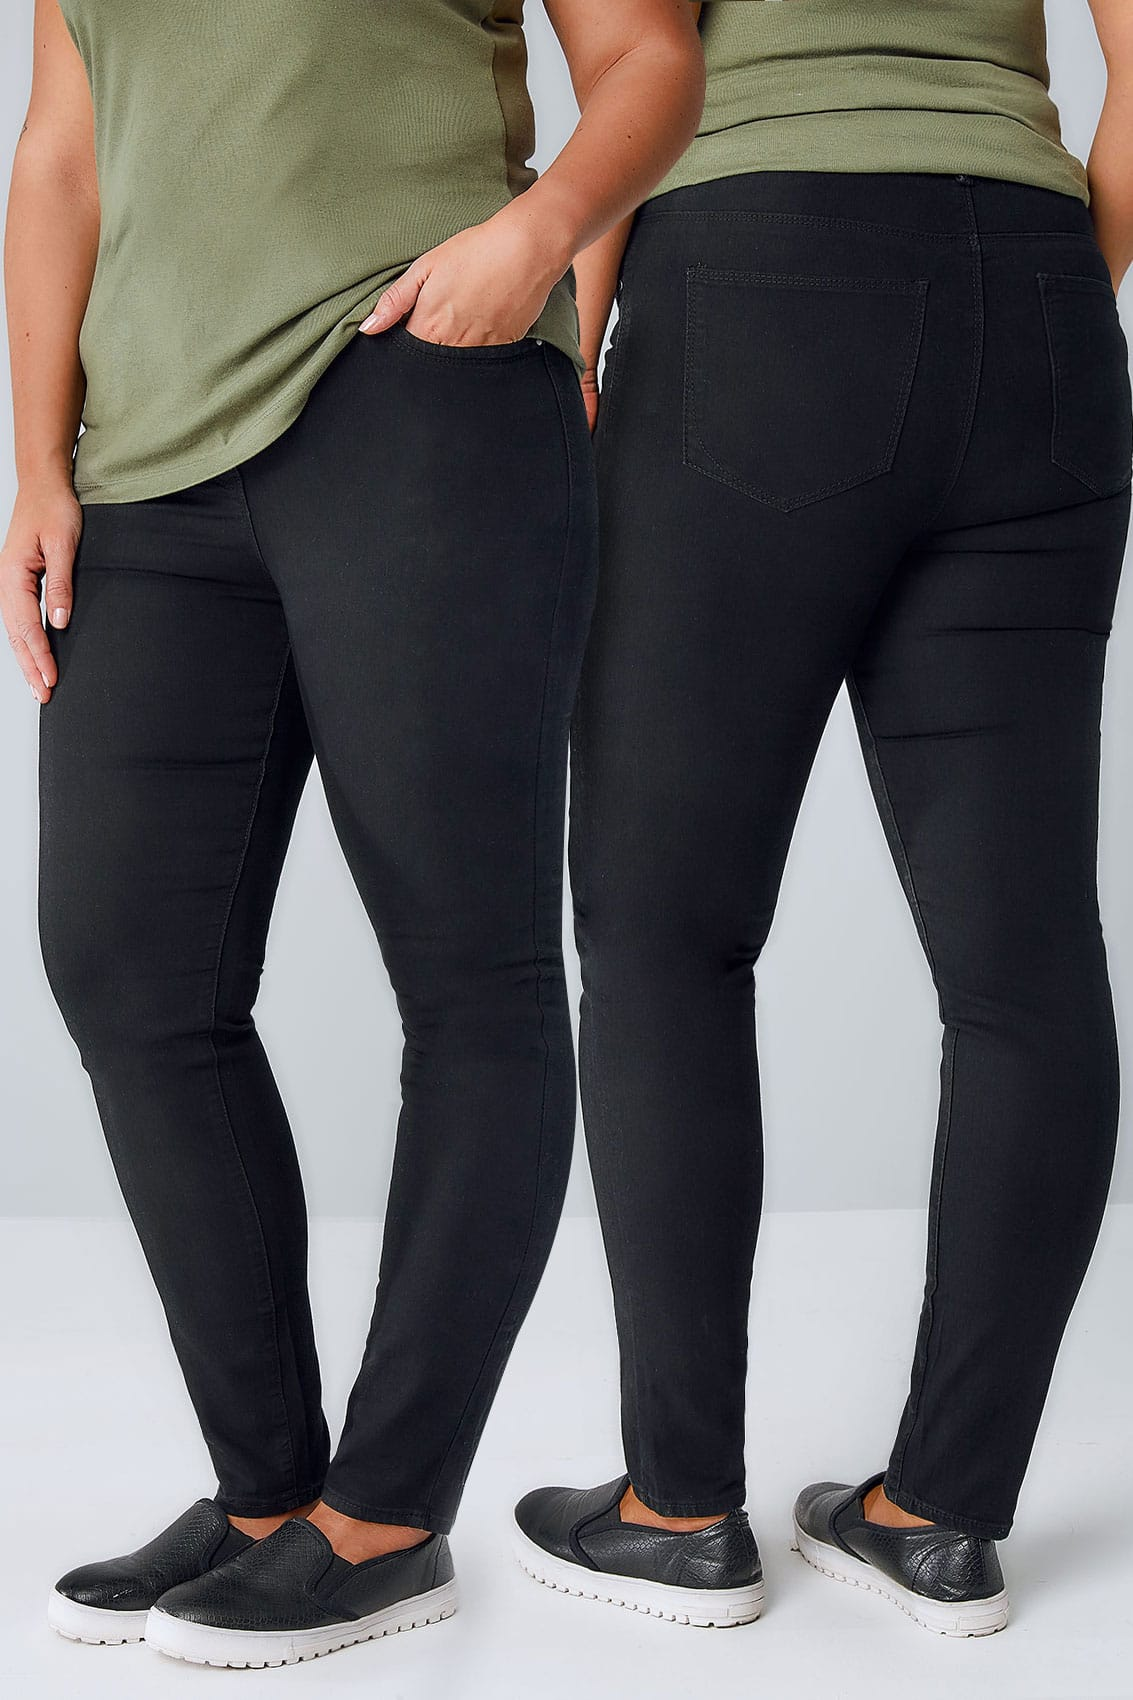 black super stretch skinny jeans, plus size 16 to 28